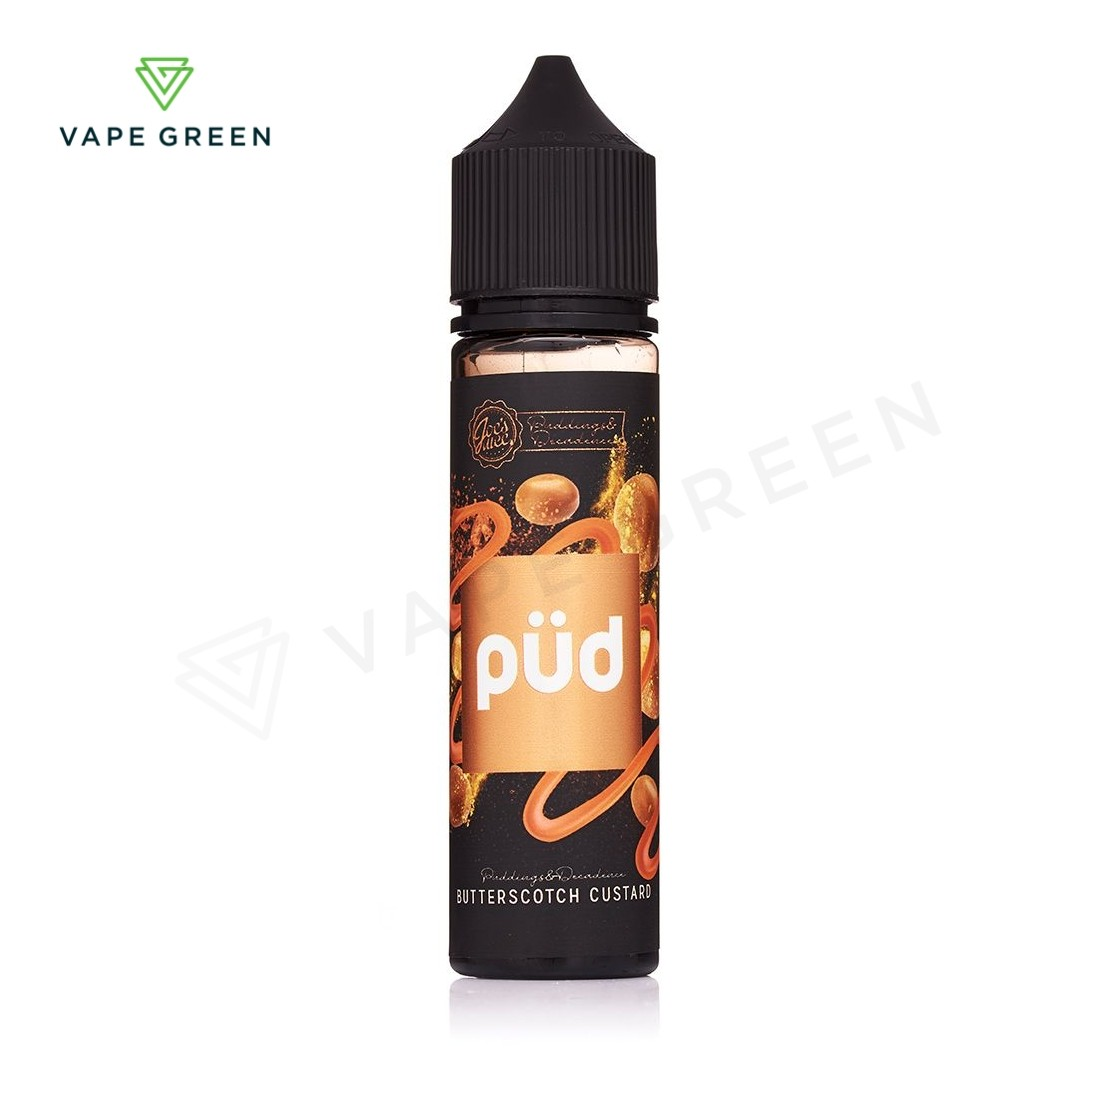 Butterscotch Custard E-liquid by Pud 50ml